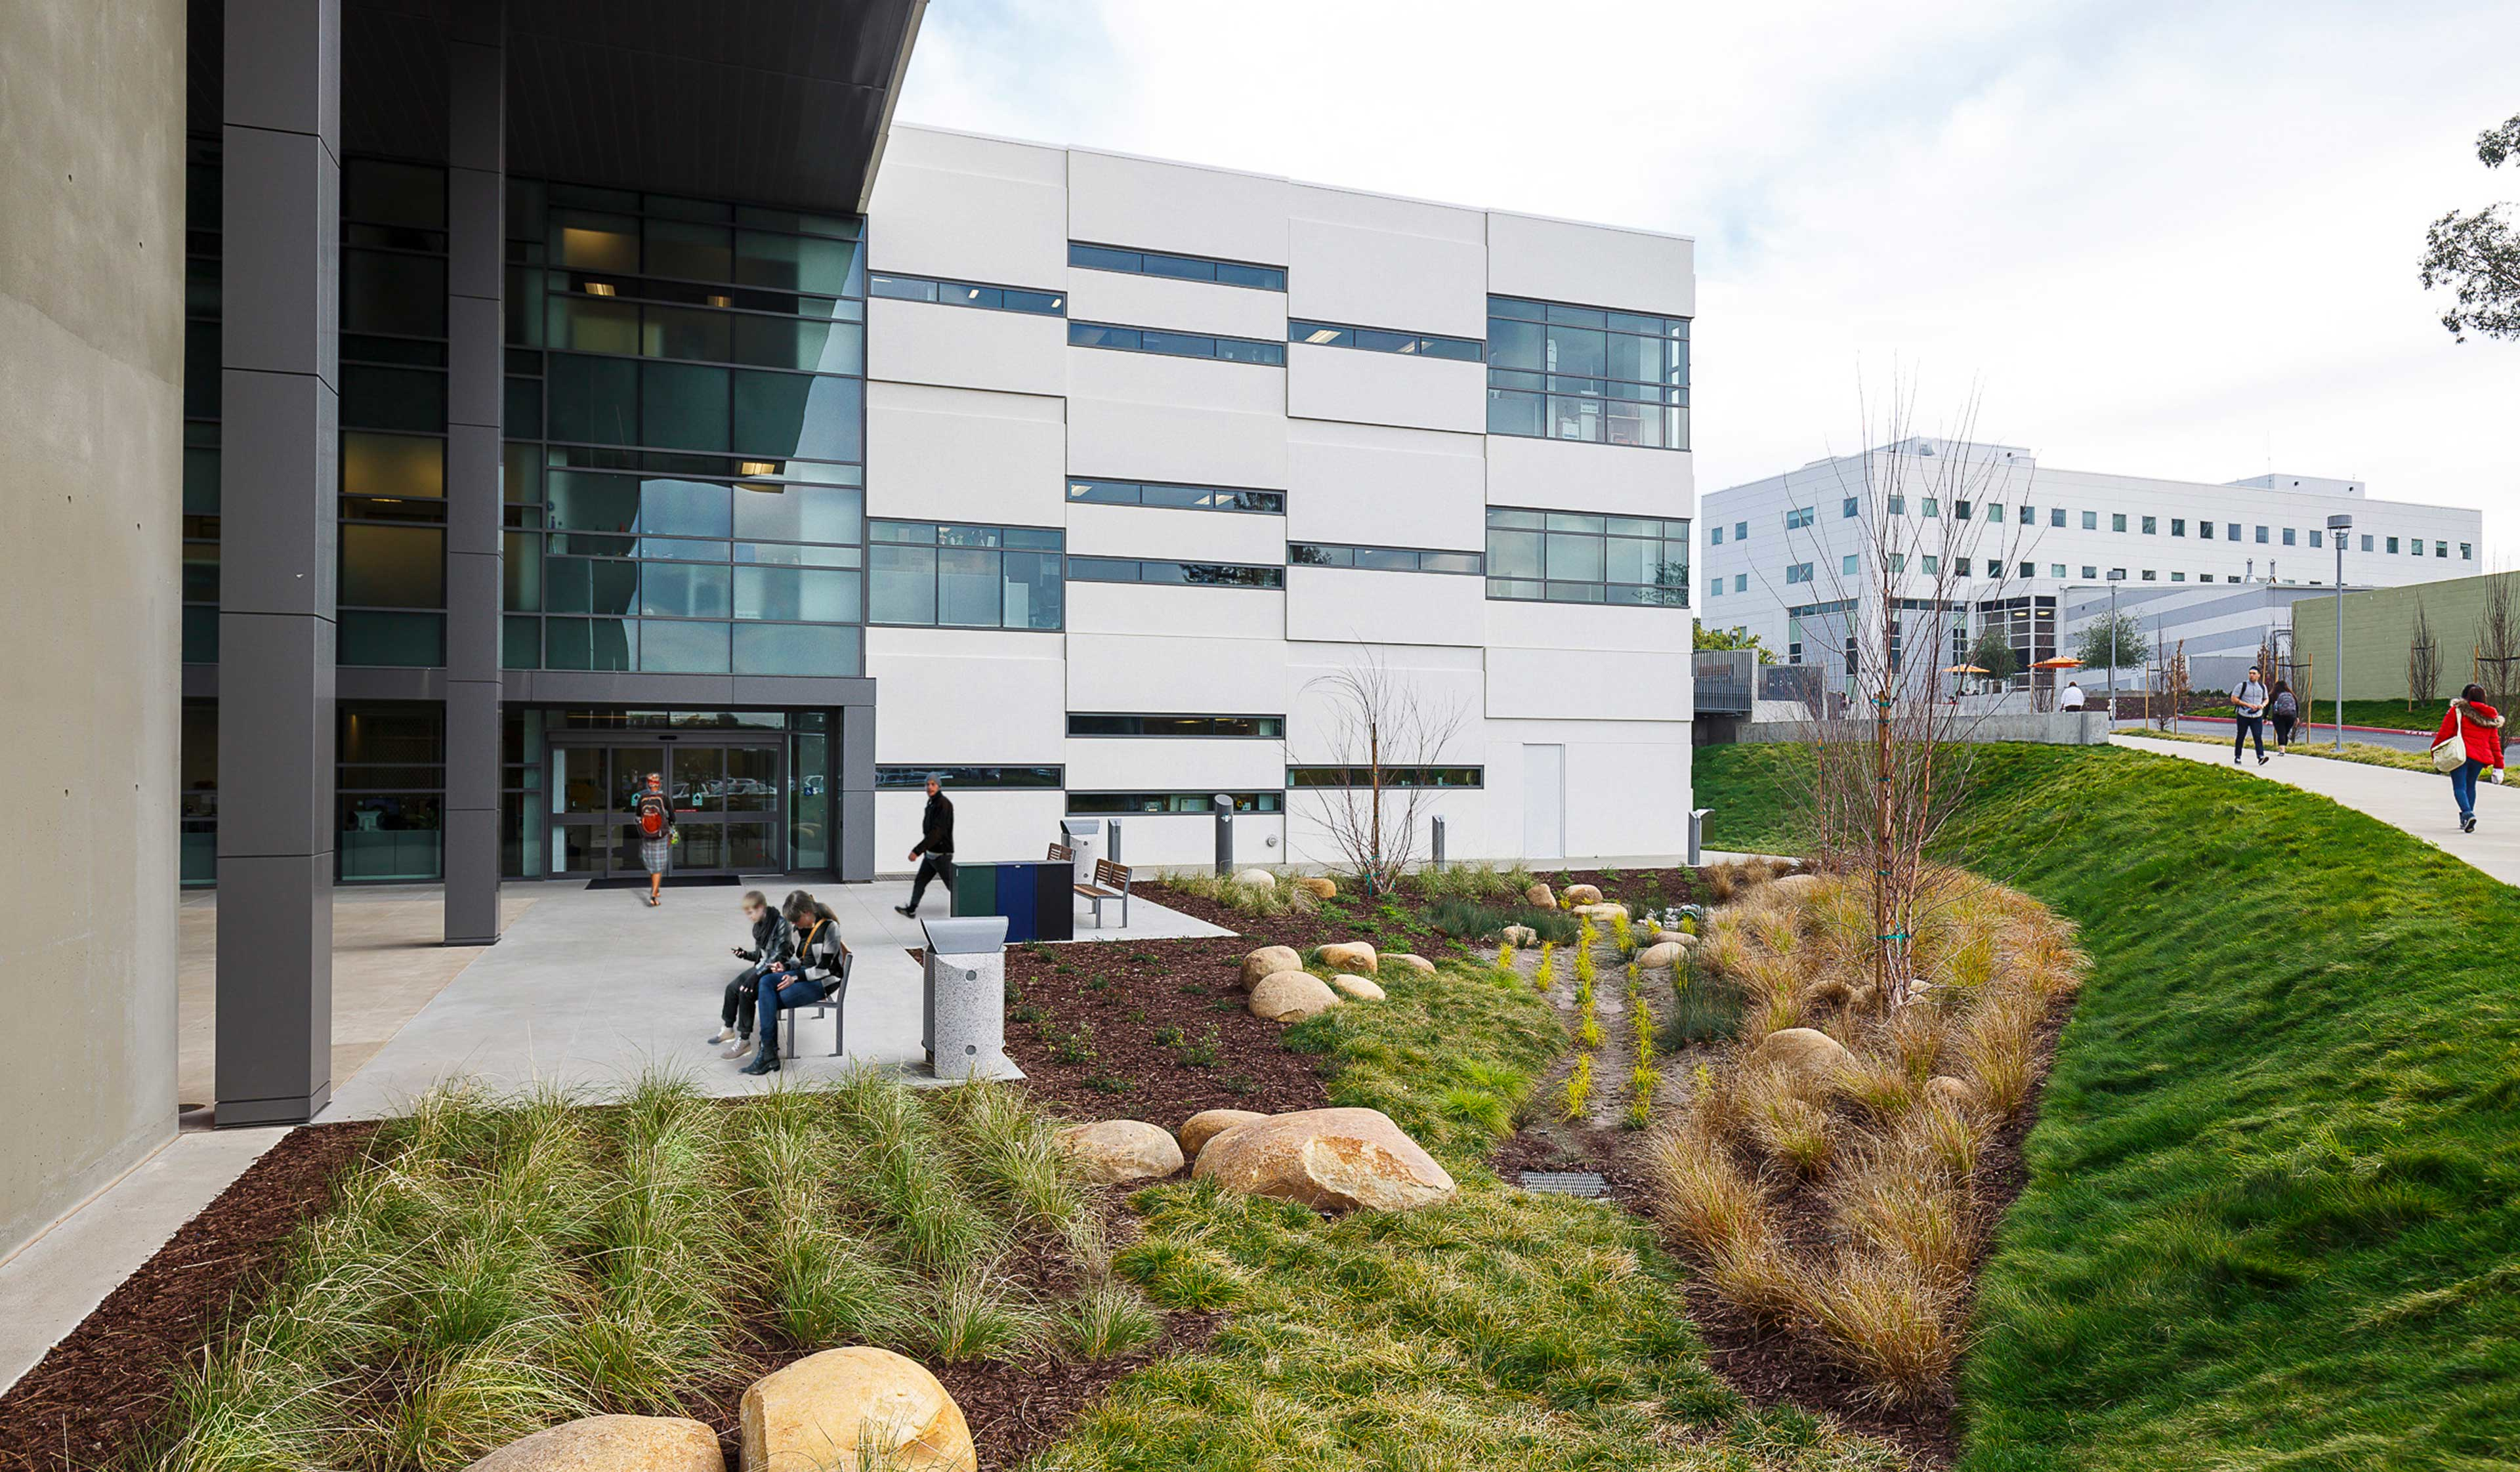 Csueb Student And Faculty Support Center3